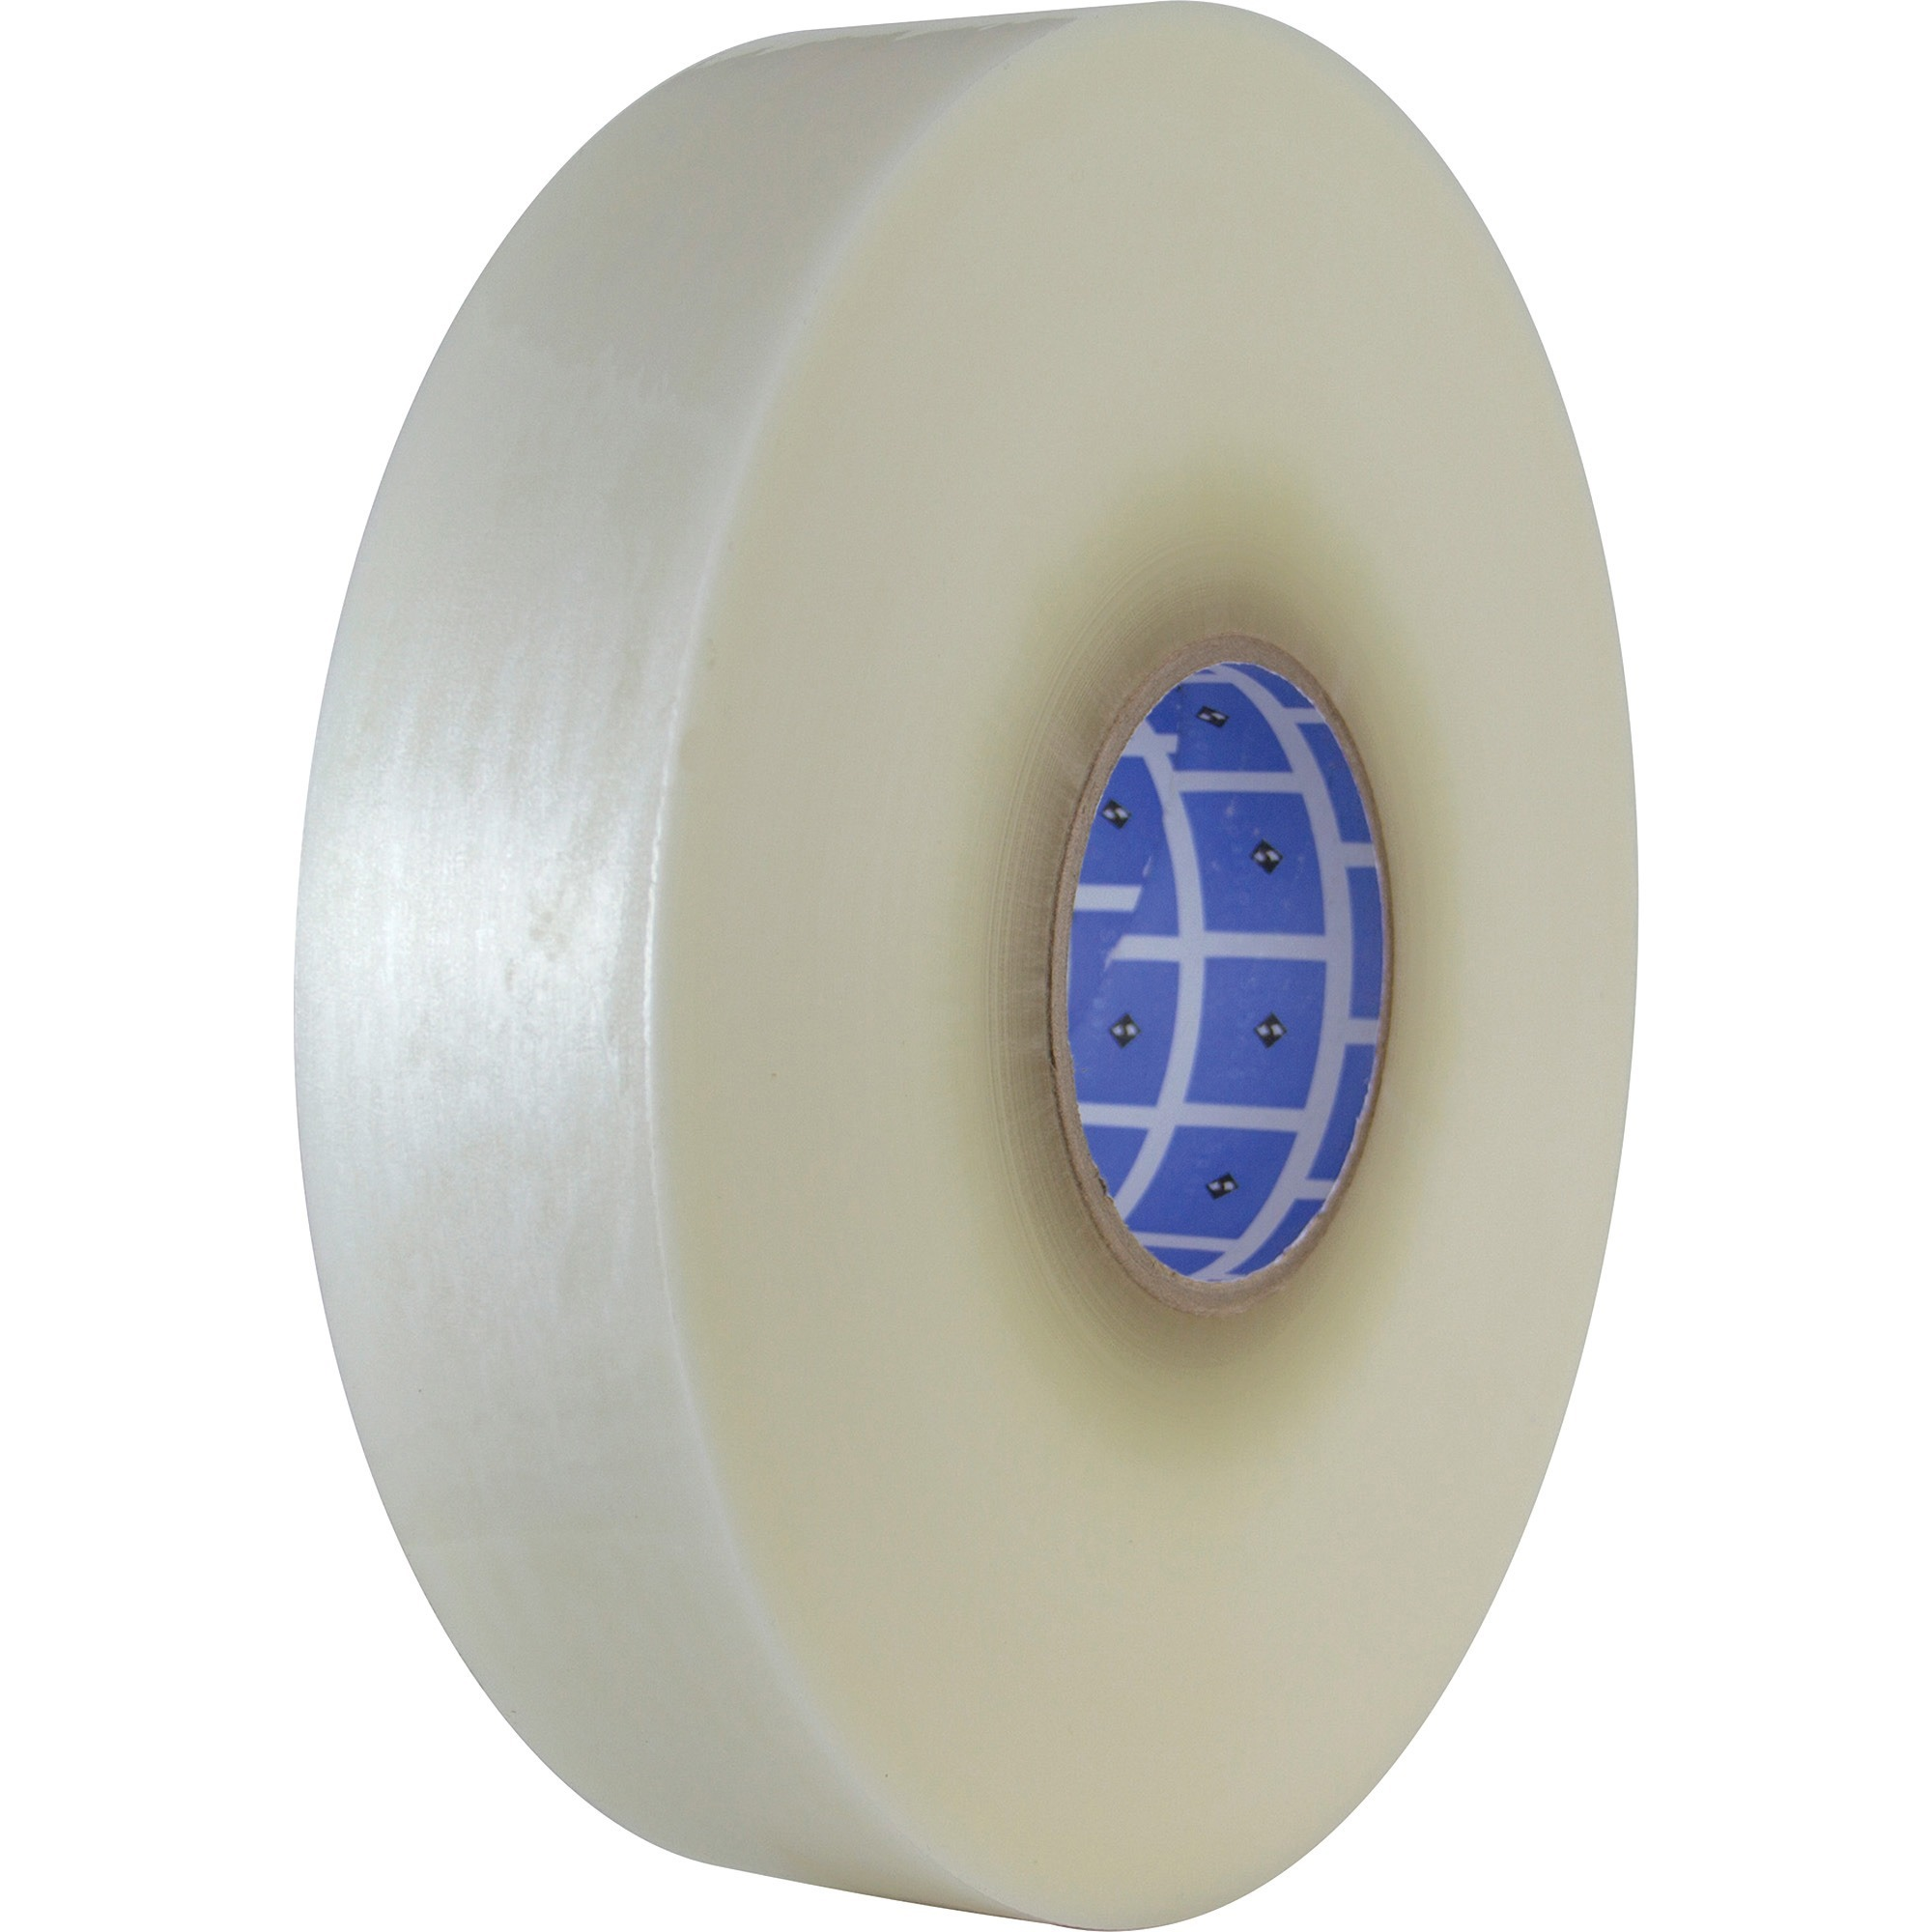 """Sparco 1.6mil Hot-melt Sealing Tape - 2"""" Width x 1000 yd Length - Long Lasting, Easy Unwind - 6 / Carton - Clear"""